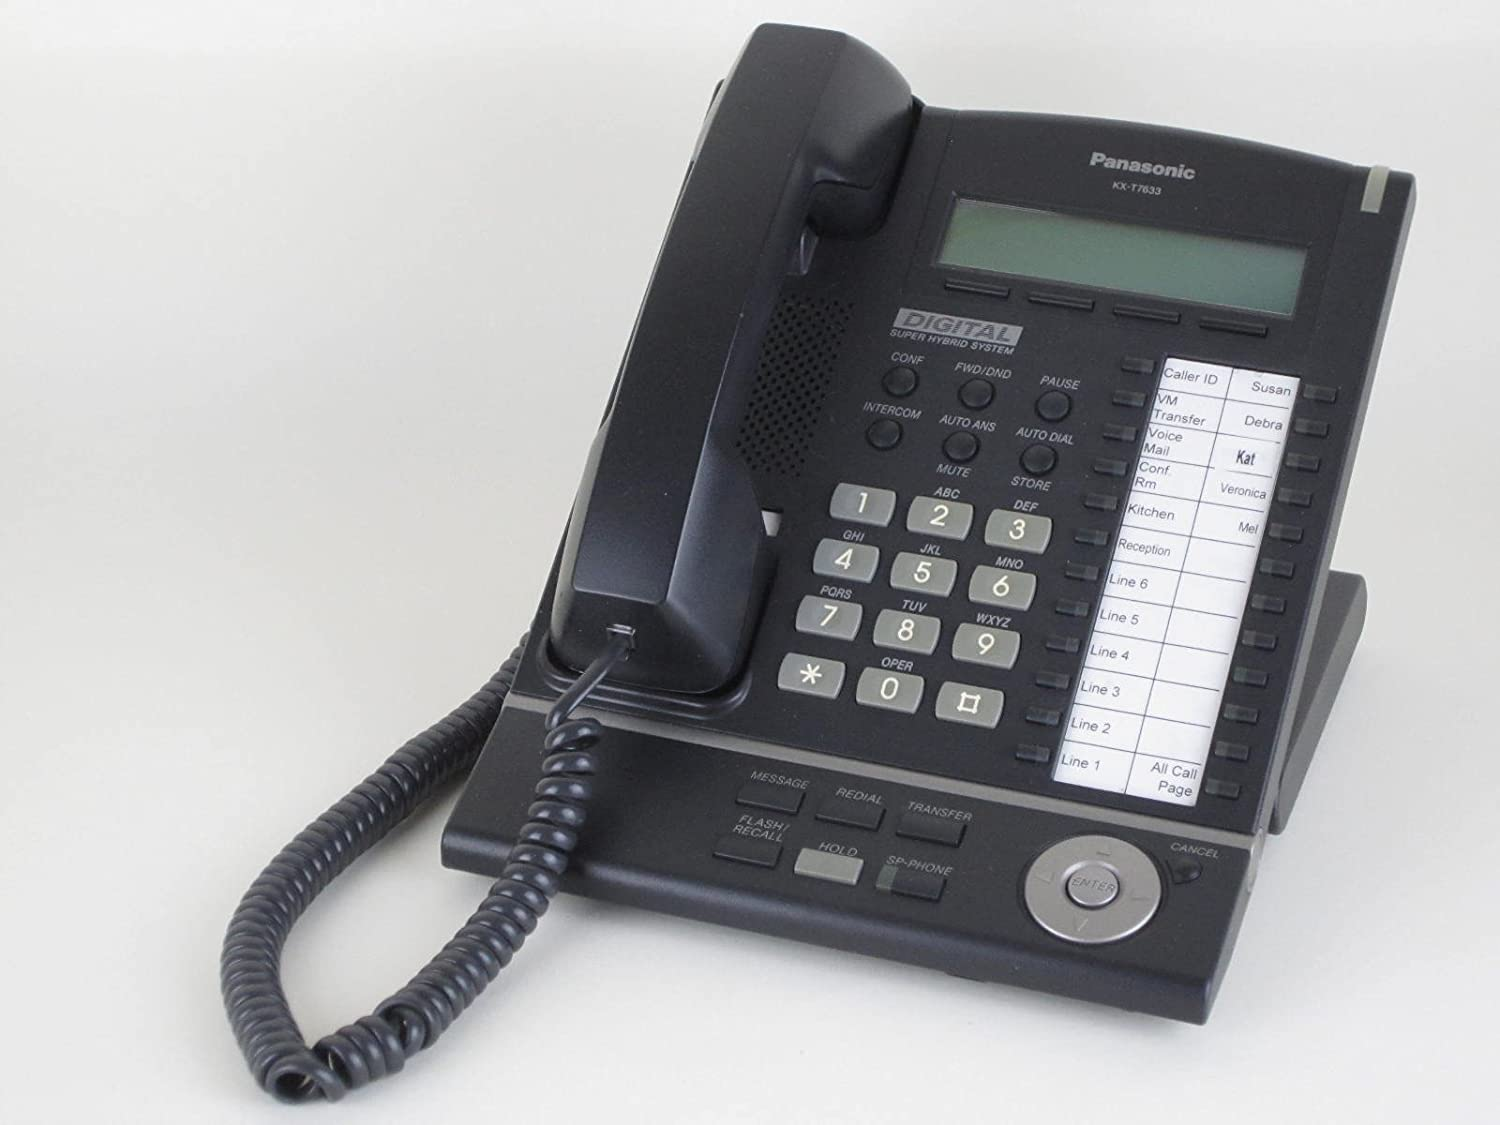 Amazon.com : Panasonic KX-T7633-B Digital Telephone Black 3-Line LCD  Proprietary Phone : Corded Telephones : Electronics